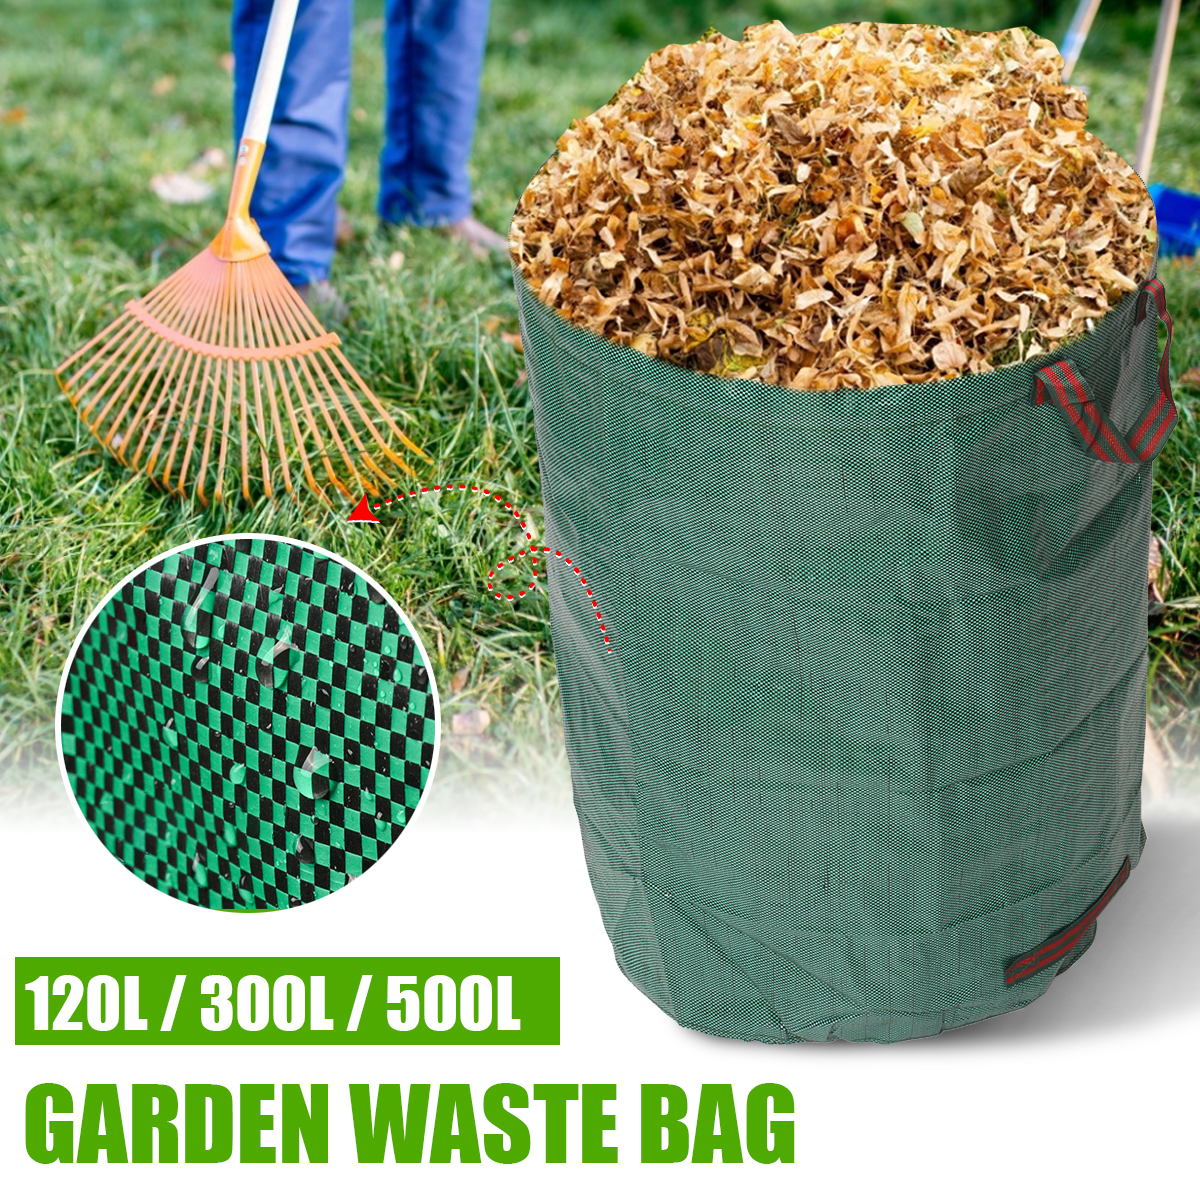 Large Capacity Heavy Duty Garden House Waste Trash Bag Durable Waterproof Yard Leaf Grass Container Storage 120L/300L/500L